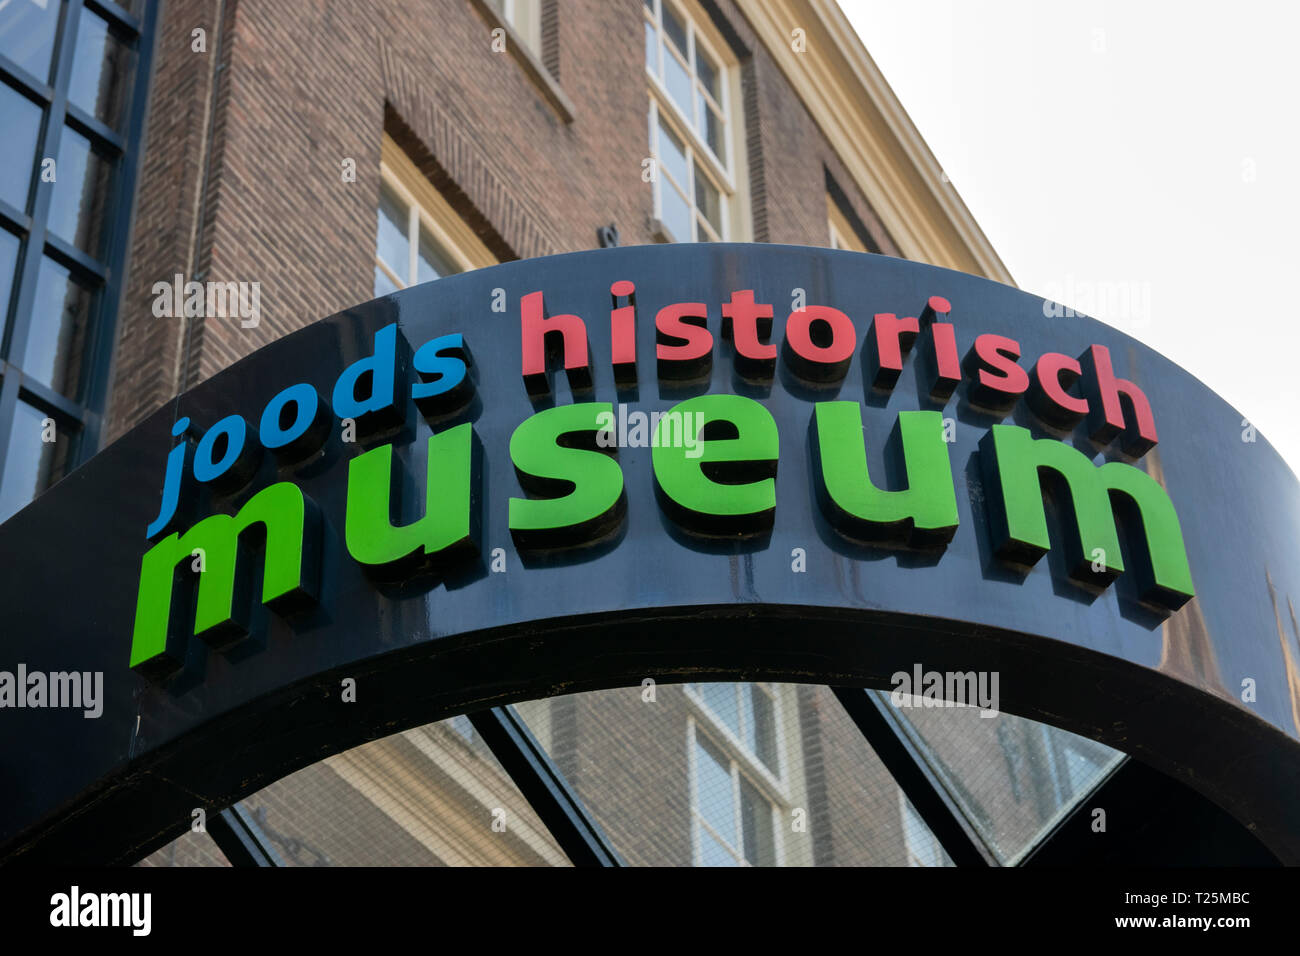 Entrance Of The Jewish Historical Museum Amsterdam The Netherlands 2018 - Stock Image